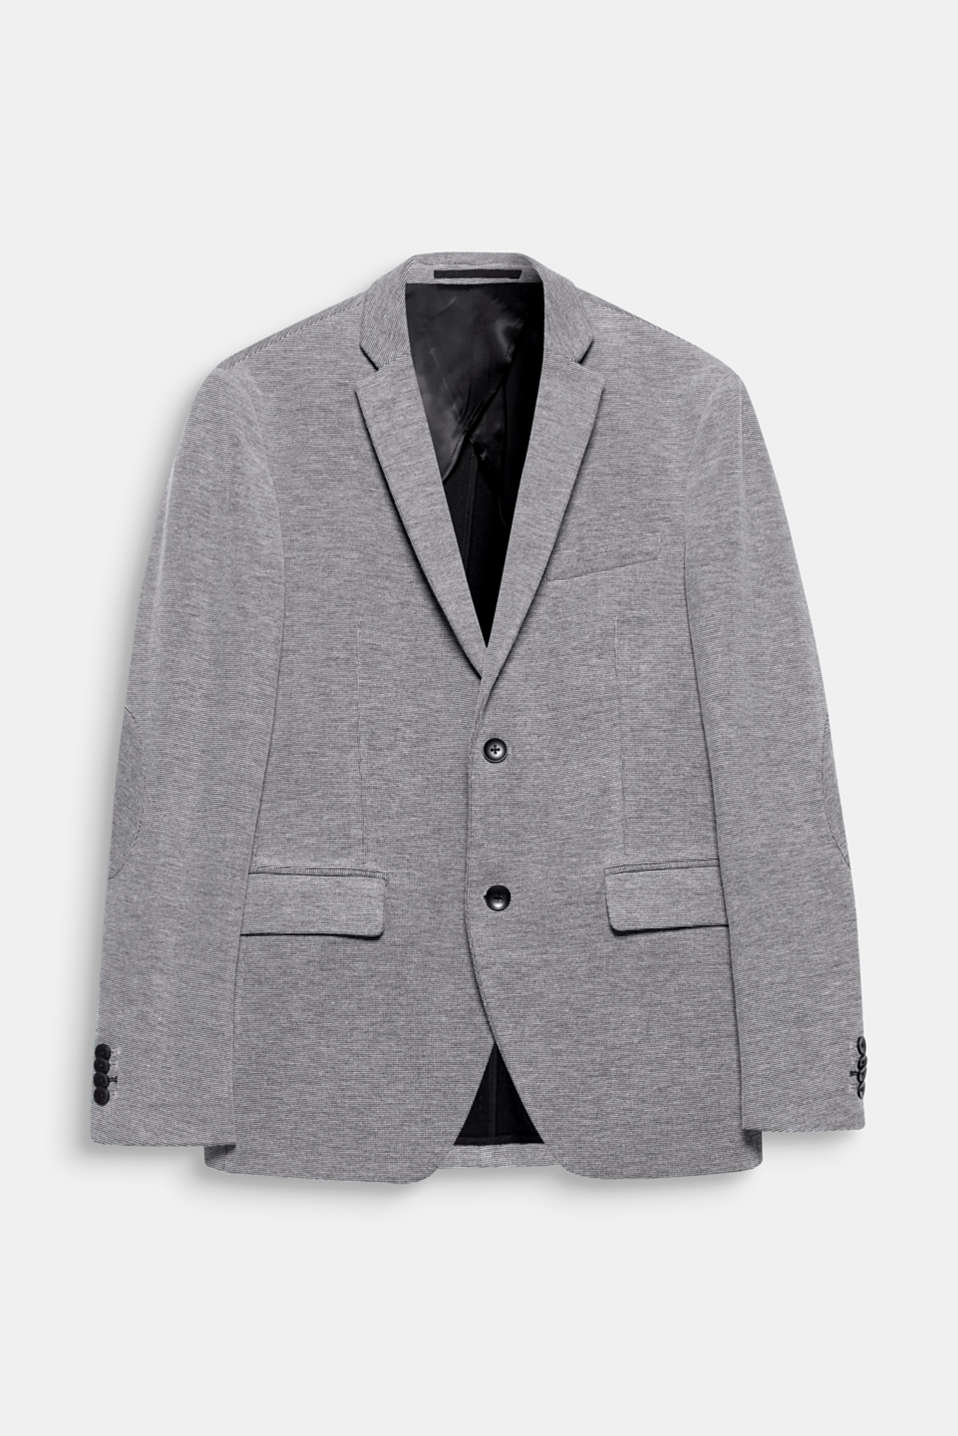 Textured jersey in a trendy black and white look gives this sporty mens blazer an exciting texture.